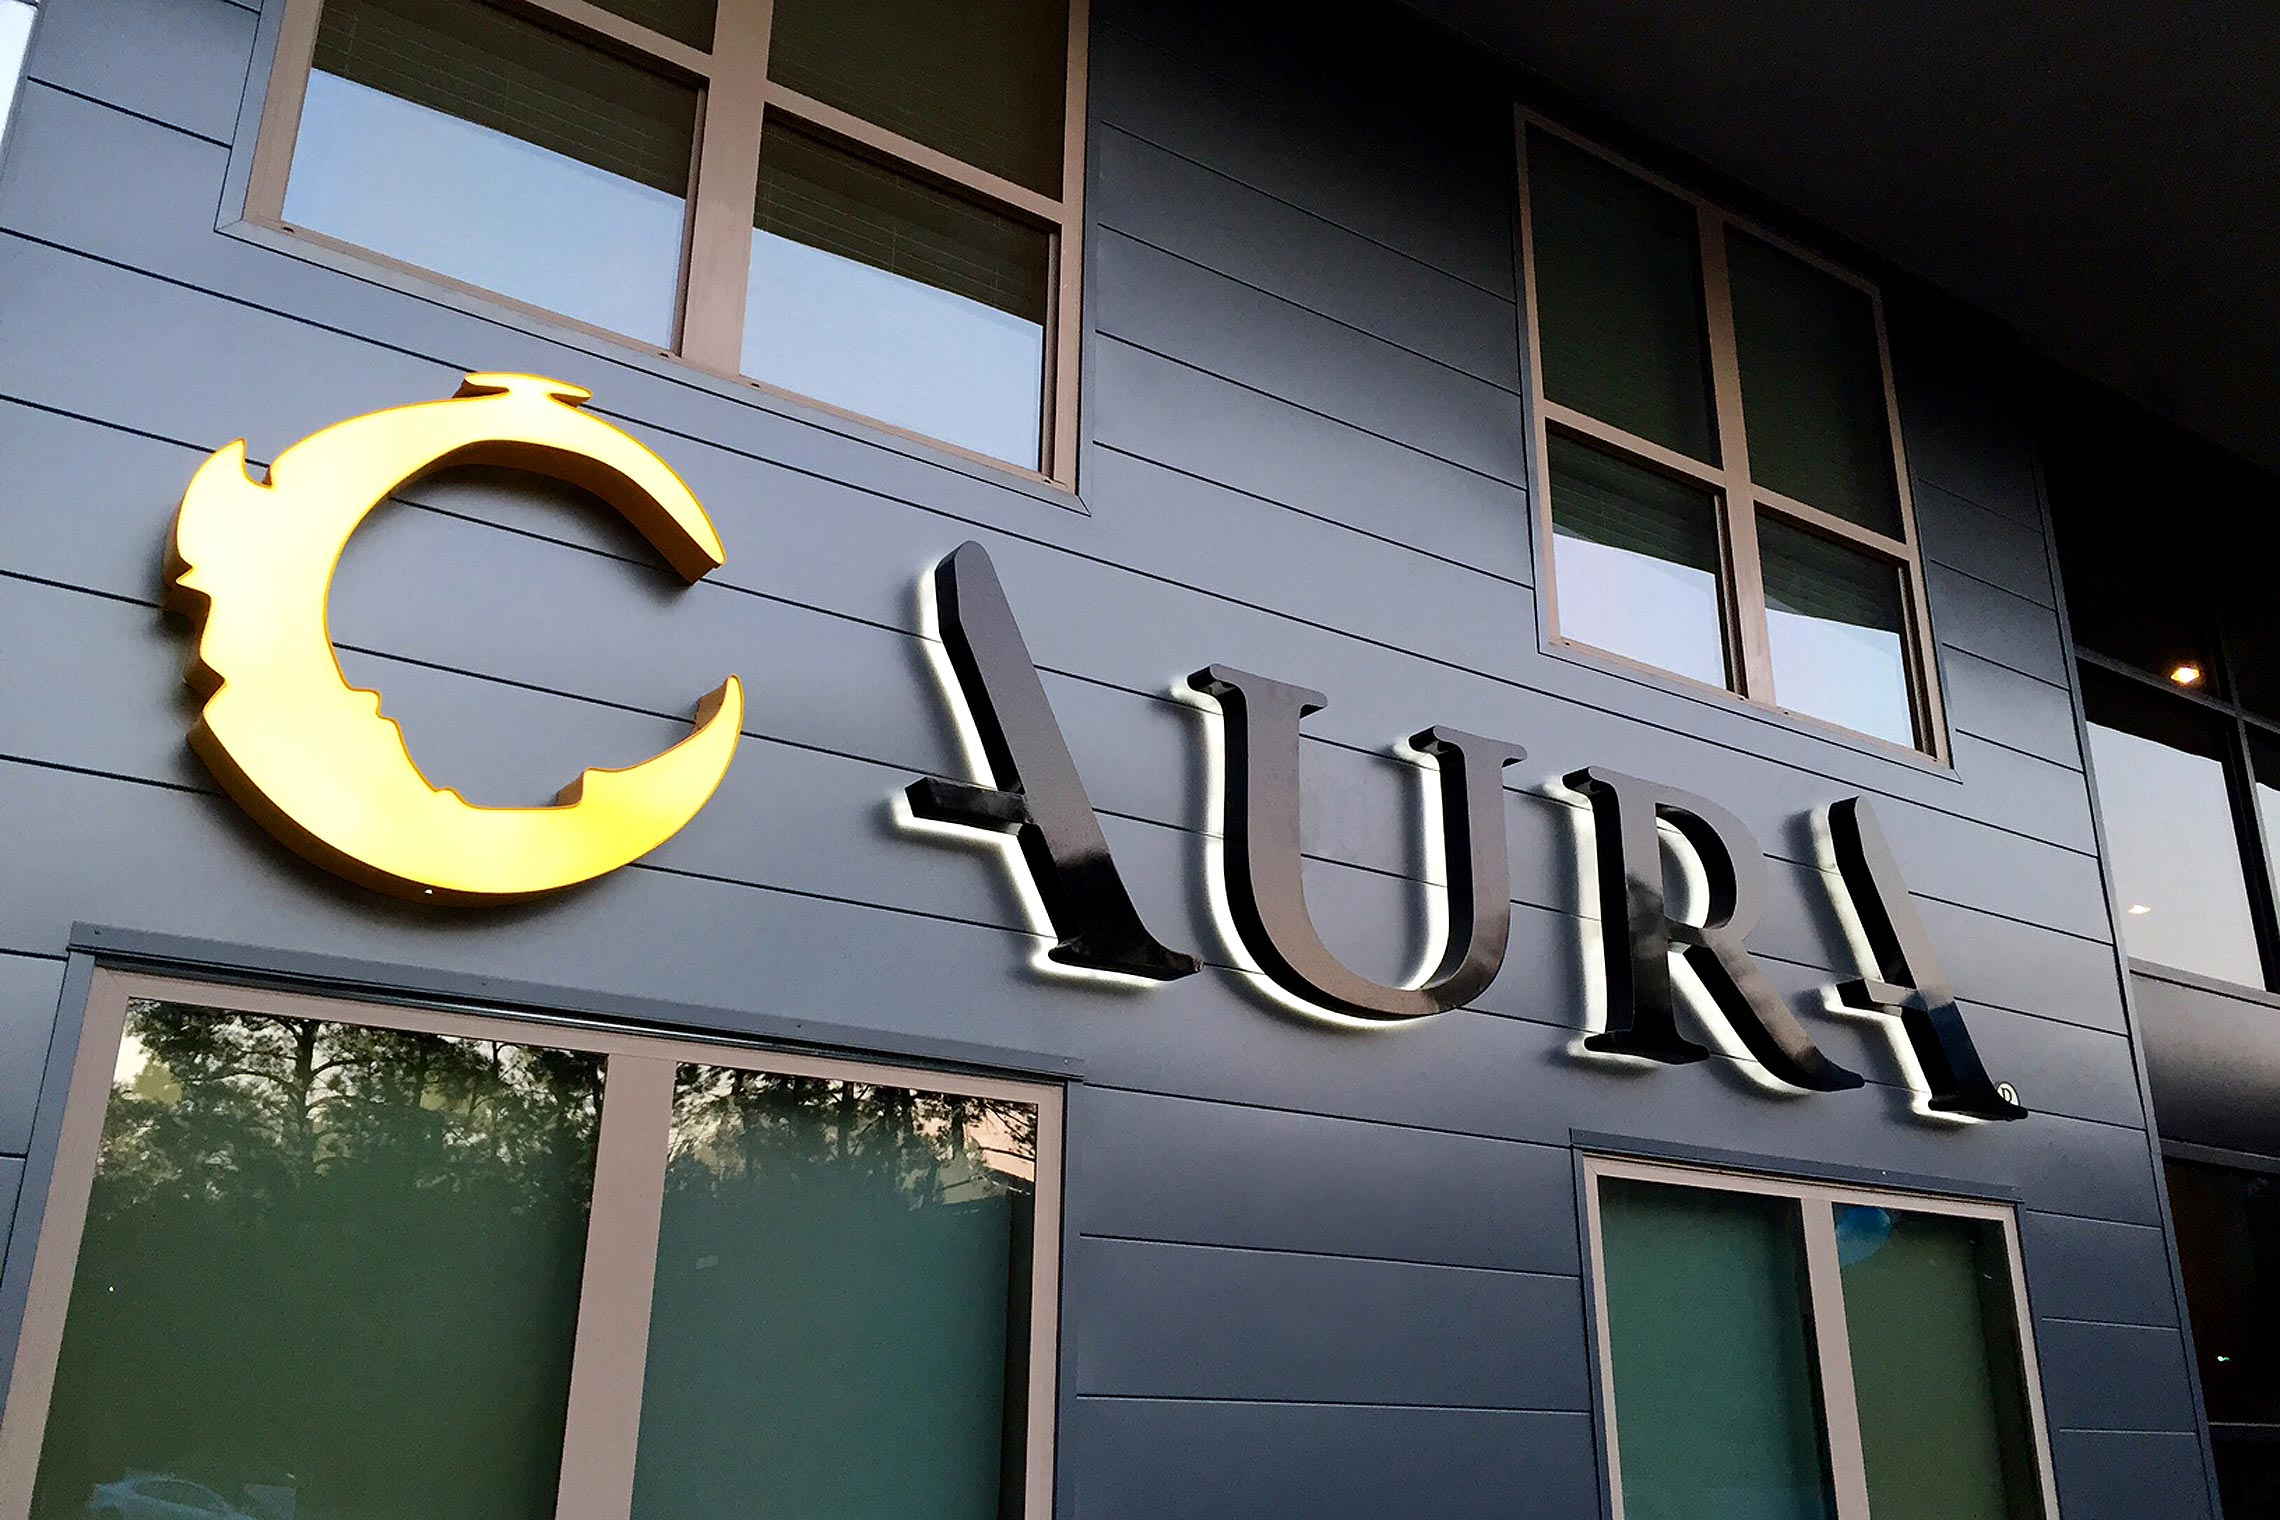 Aura Memorial Illuminated Halo Lit Letters by Leasing Office Night